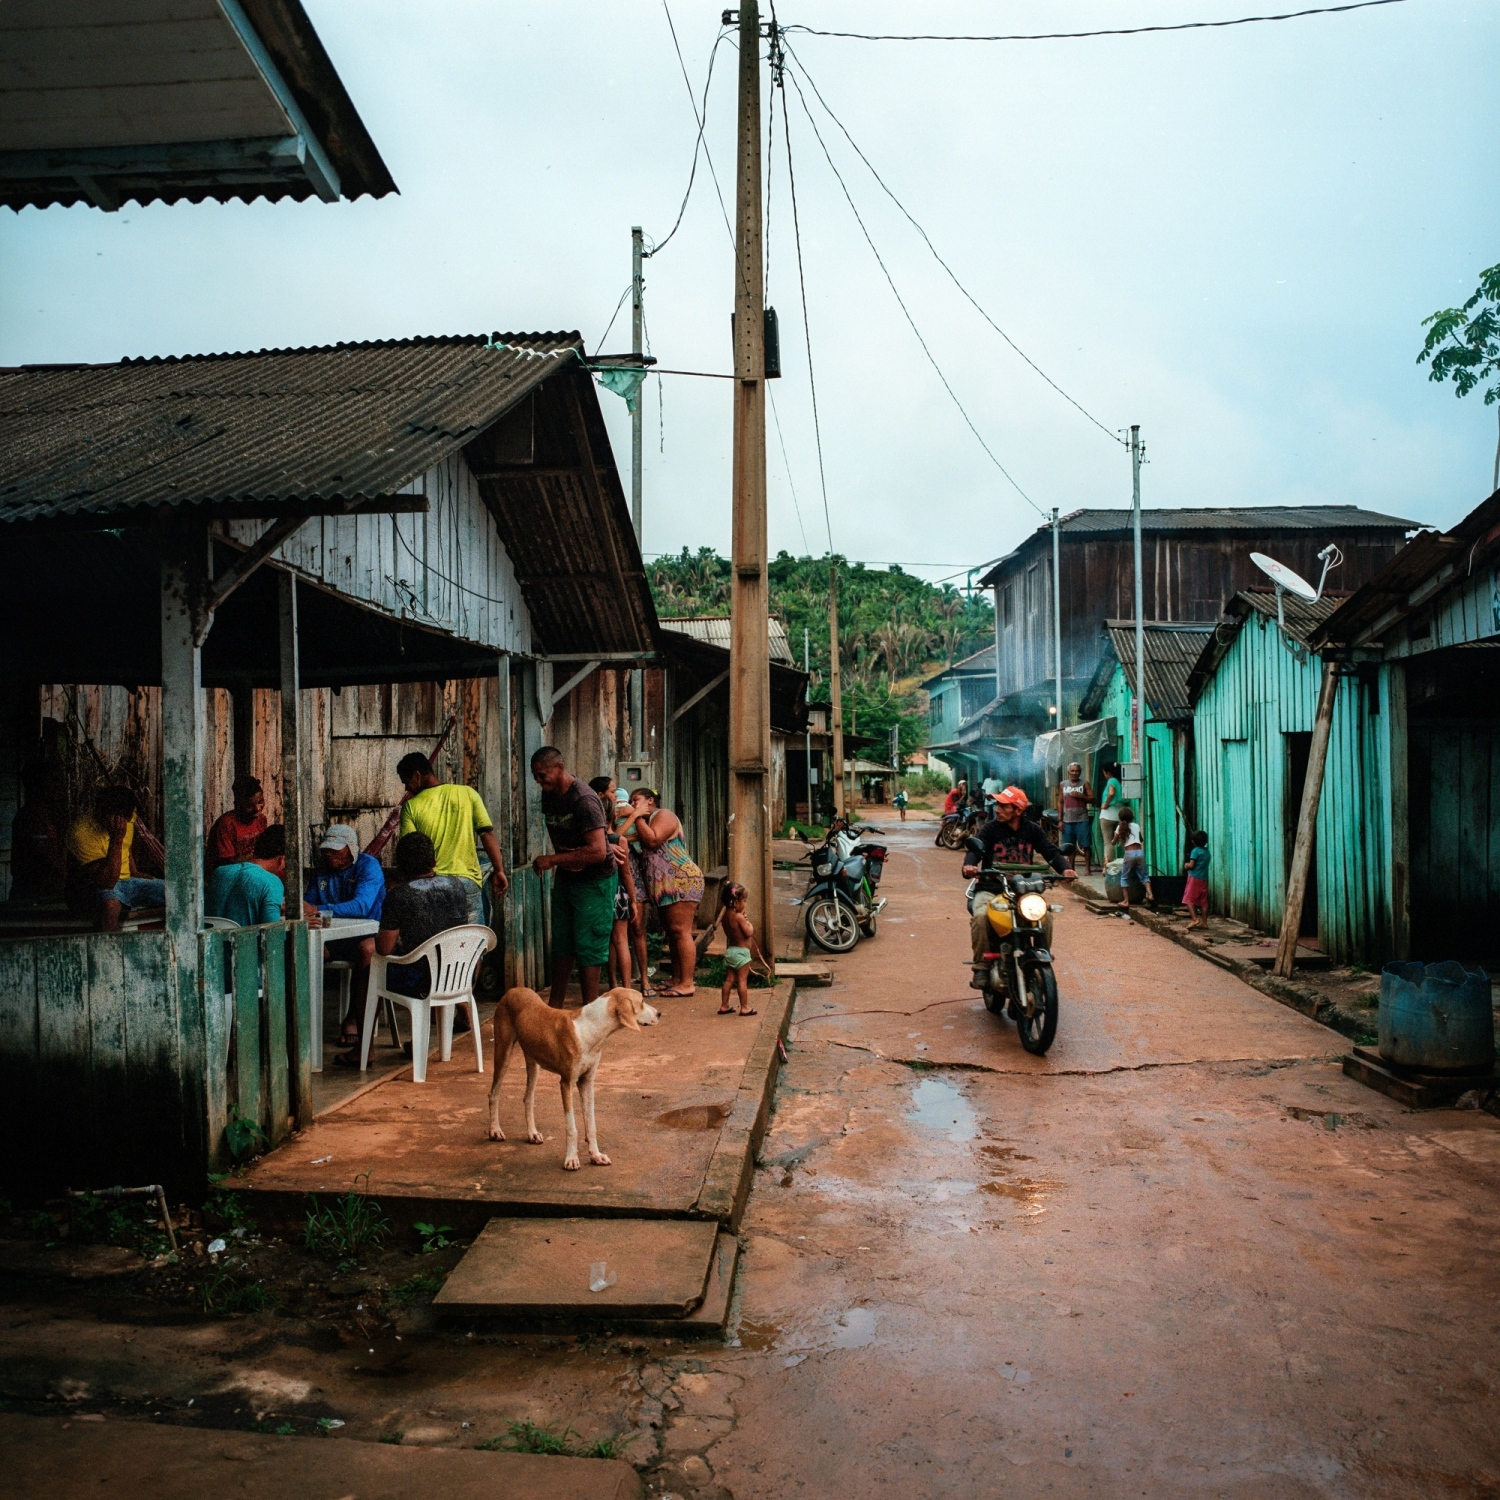 2017. People are seen in the streets of Ressaca, a Garimpero gold mining communtiy where the Canadian owned Belo Sun gold mine is planned to be built. Belo Sun will be the largest open-pit gold mine in the country and will excavate an estimated 60 tonnes of gold during its lifetime. In 1992 when the community was booming there were over 8,000 garimpeiros, today there are just 400 to 500 remaining. In 2012 police and environmental inspectors began to crack down on the community and their co-operative lost its mining license severley impacting the livihood of the community. Belo Sun obtained an advance license in 2004, which recognises the environmental viability of the project and on Feb. 2, 2017 the Environment and Sustainability department of the state of Pará granted it a permit to build the mine. Three weeks after the license was approved, Para's justice court suspended the project for 180 days, accusing Belo Sun of illegally purchasing public lands, and ordering them to properly relocate local communities that will be displaced by the project. Yet still many residents of the communtiy support the mine as they are hopeful to gain employment. Downstream indigenous communities were not consulted by the project. Aaron Vincent Elkaim / The Alexia Foundation.